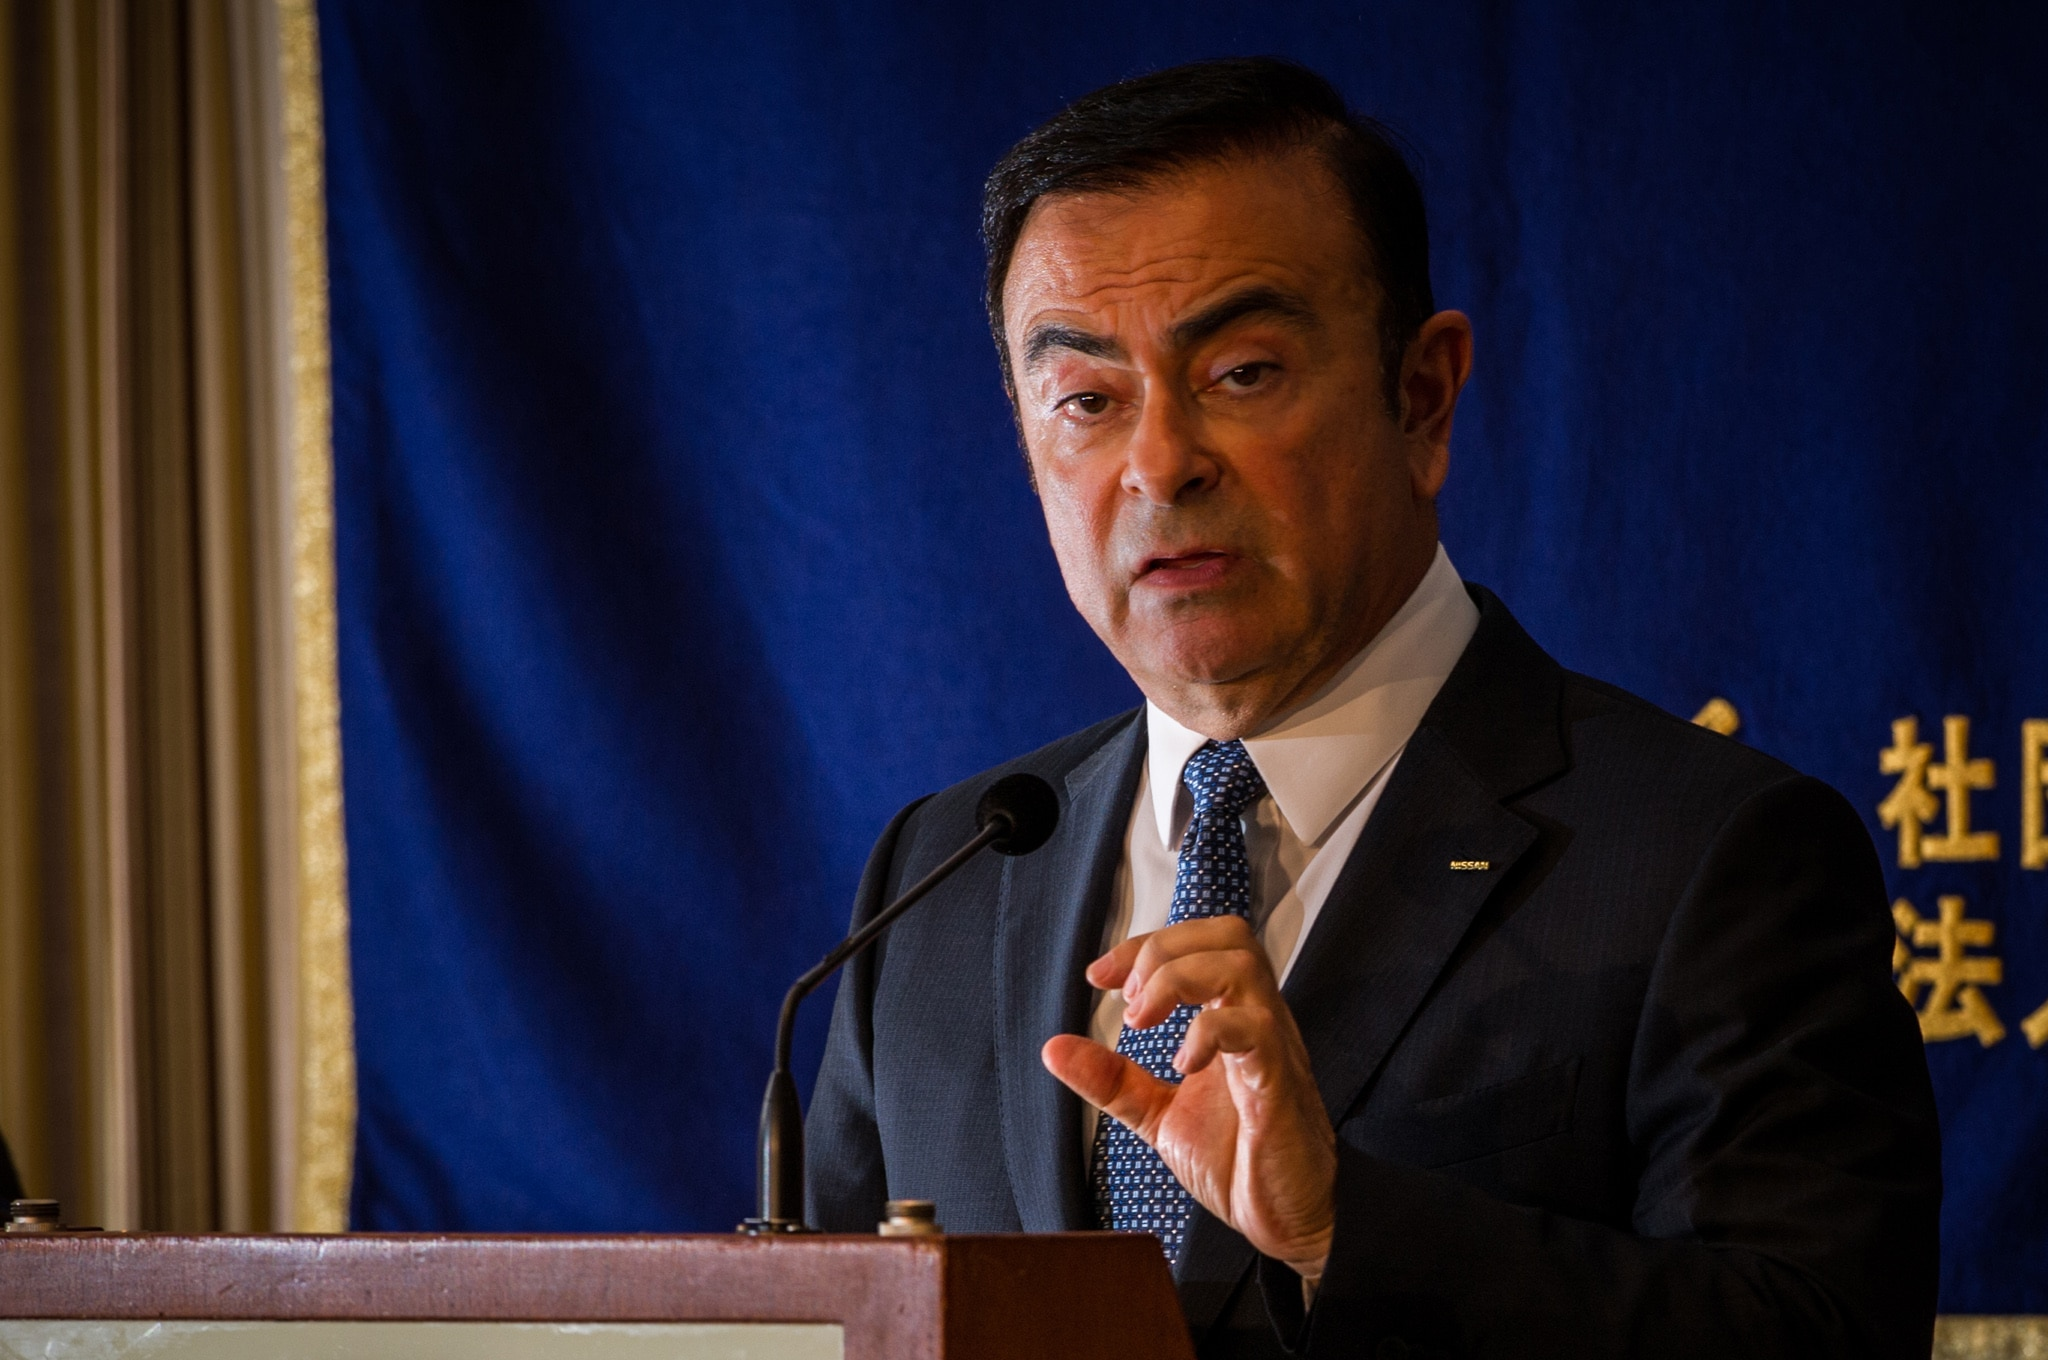 Carlos Ghosn Speaking In Japan